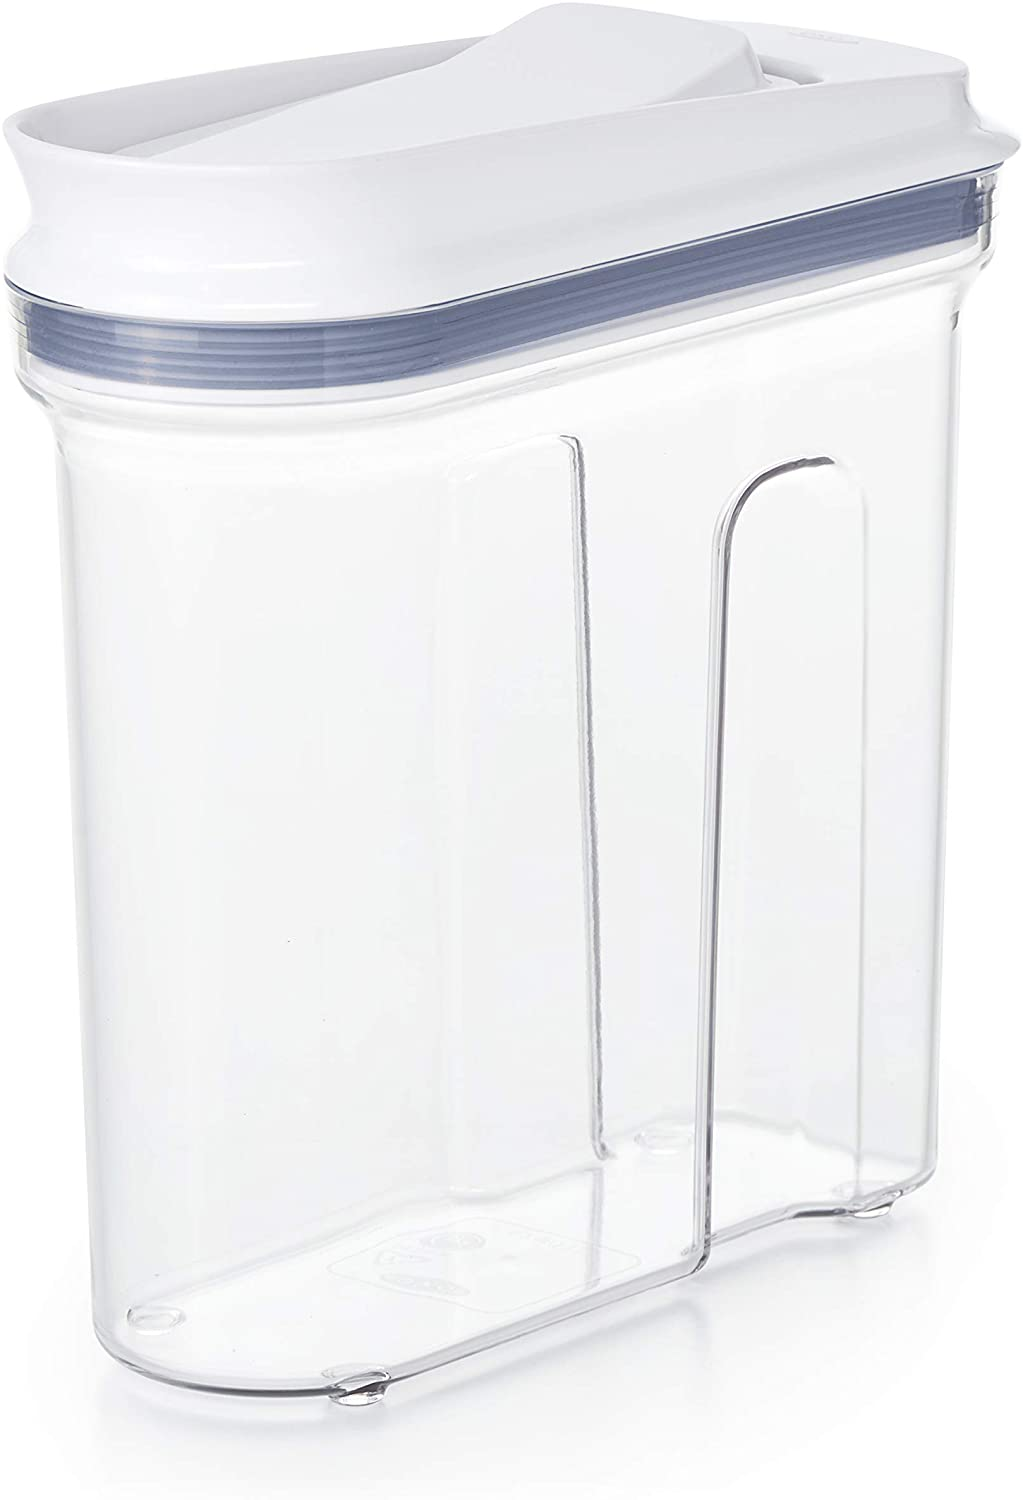 OXO Good Grips Mini All Purpose Dispenser – 1.2 Qt for Nuts and More,Clear,1.2 Qt - Nuts